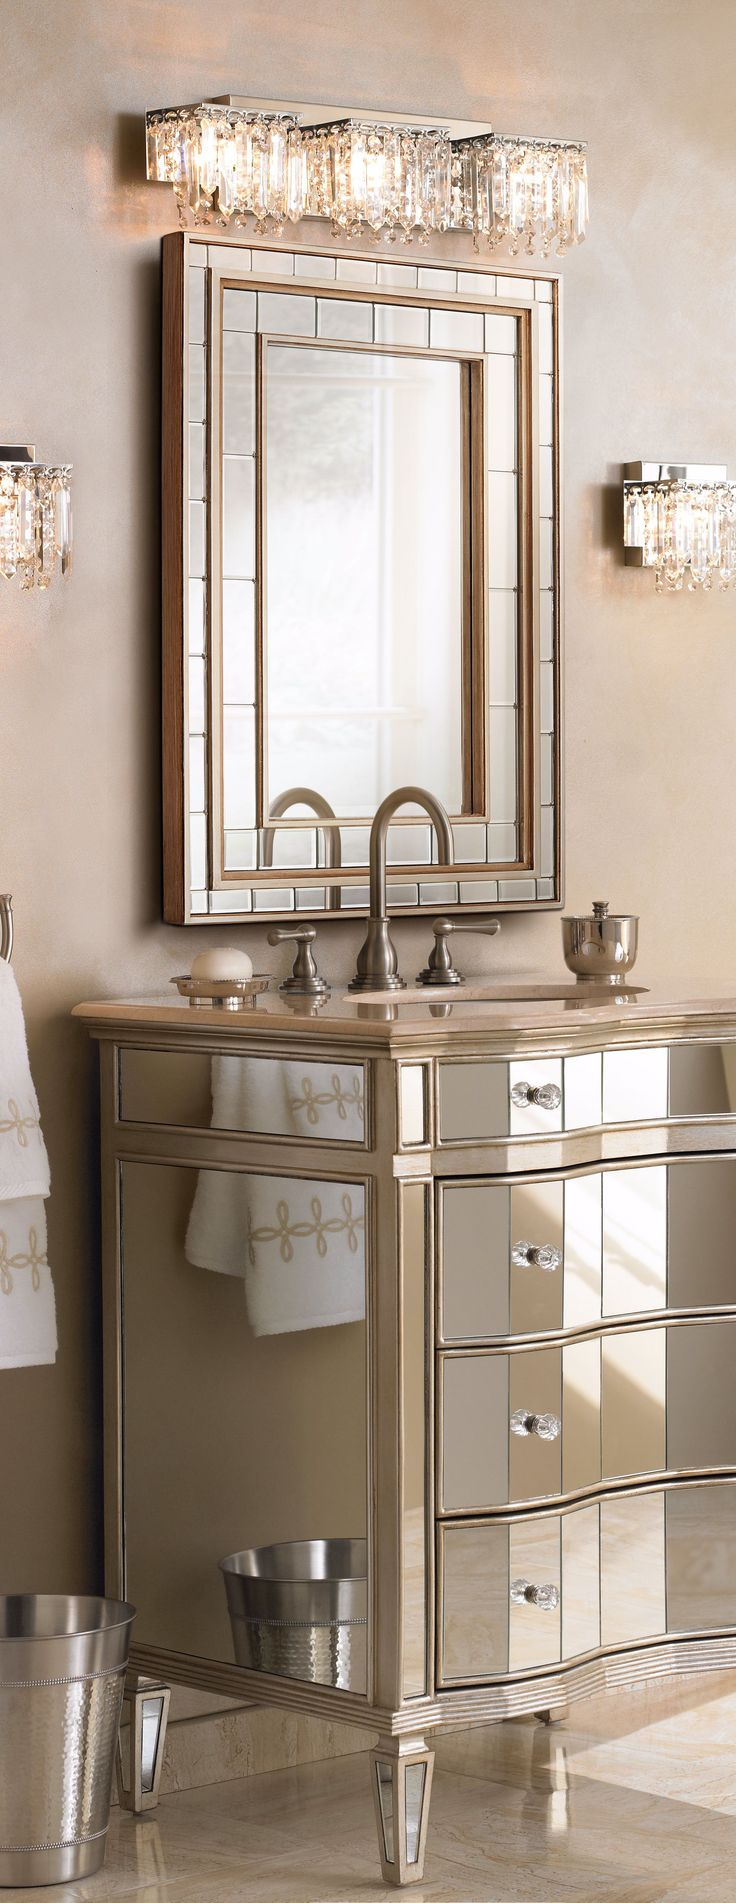 Best 25 Bathroom Sink Vanity Ideas On Pinterest